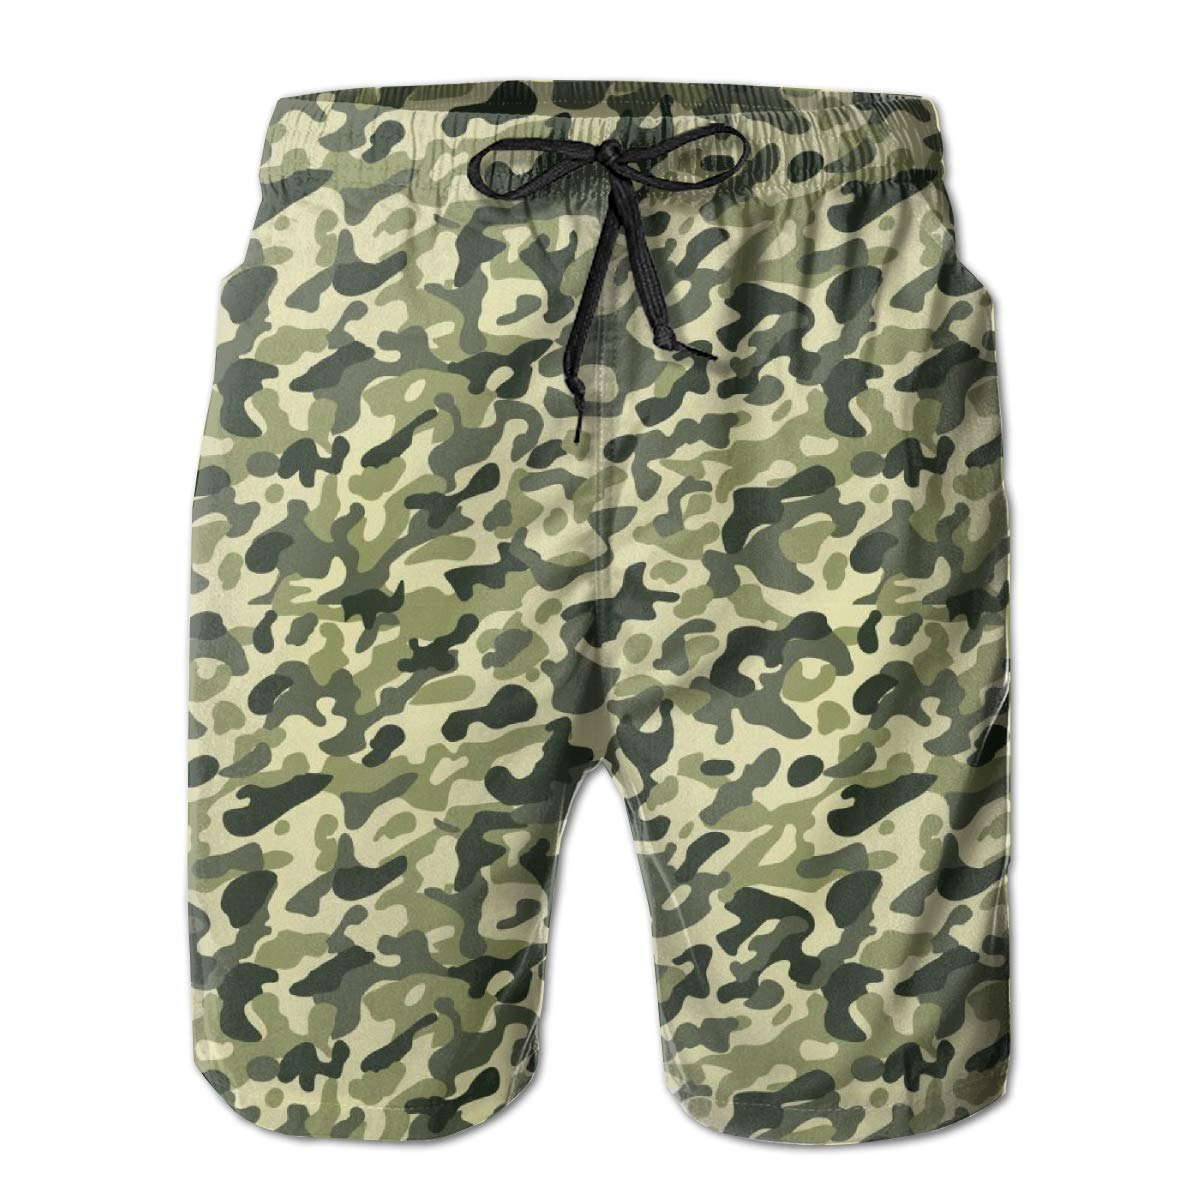 Not applicable Mens Customized Camouflage Camo Army Quick Dry Mens Swim Trunks Sports Shorts